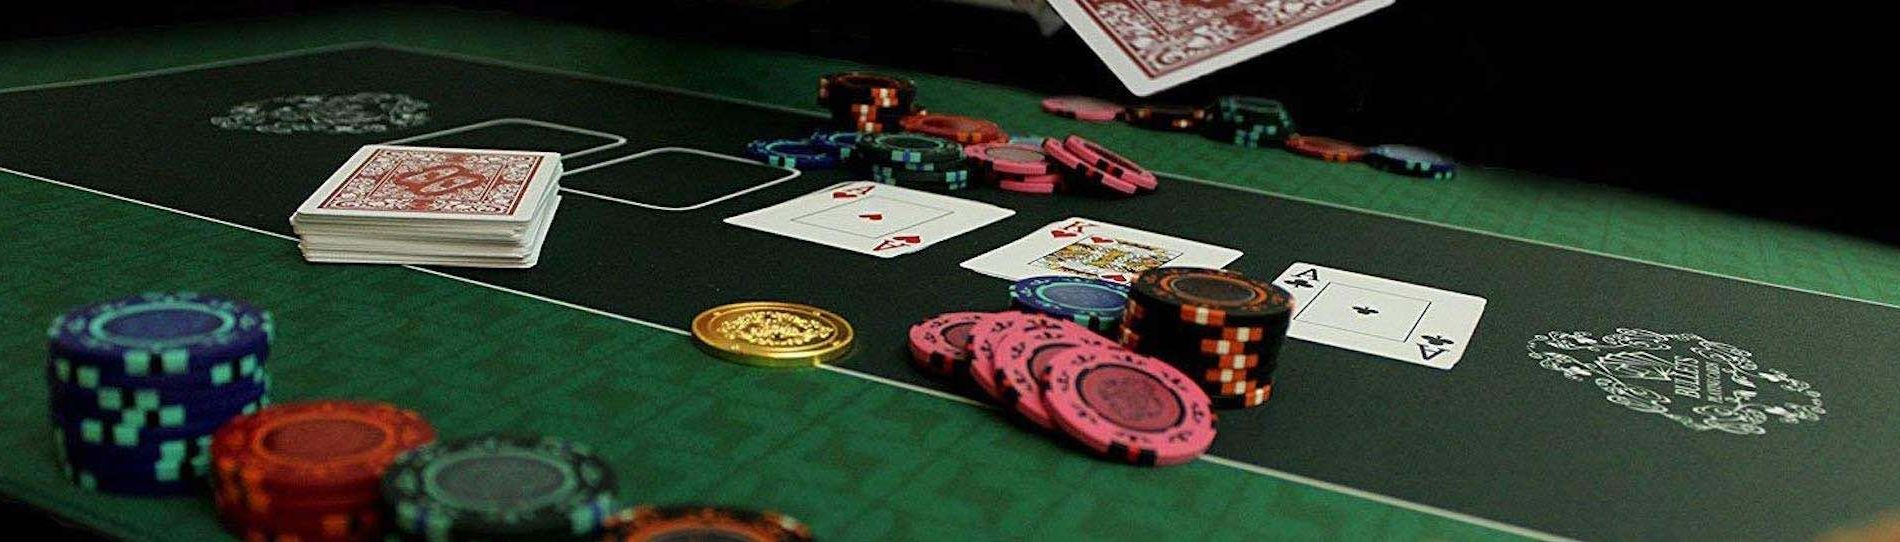 poker chips and cards on poker table of an inroom poker party